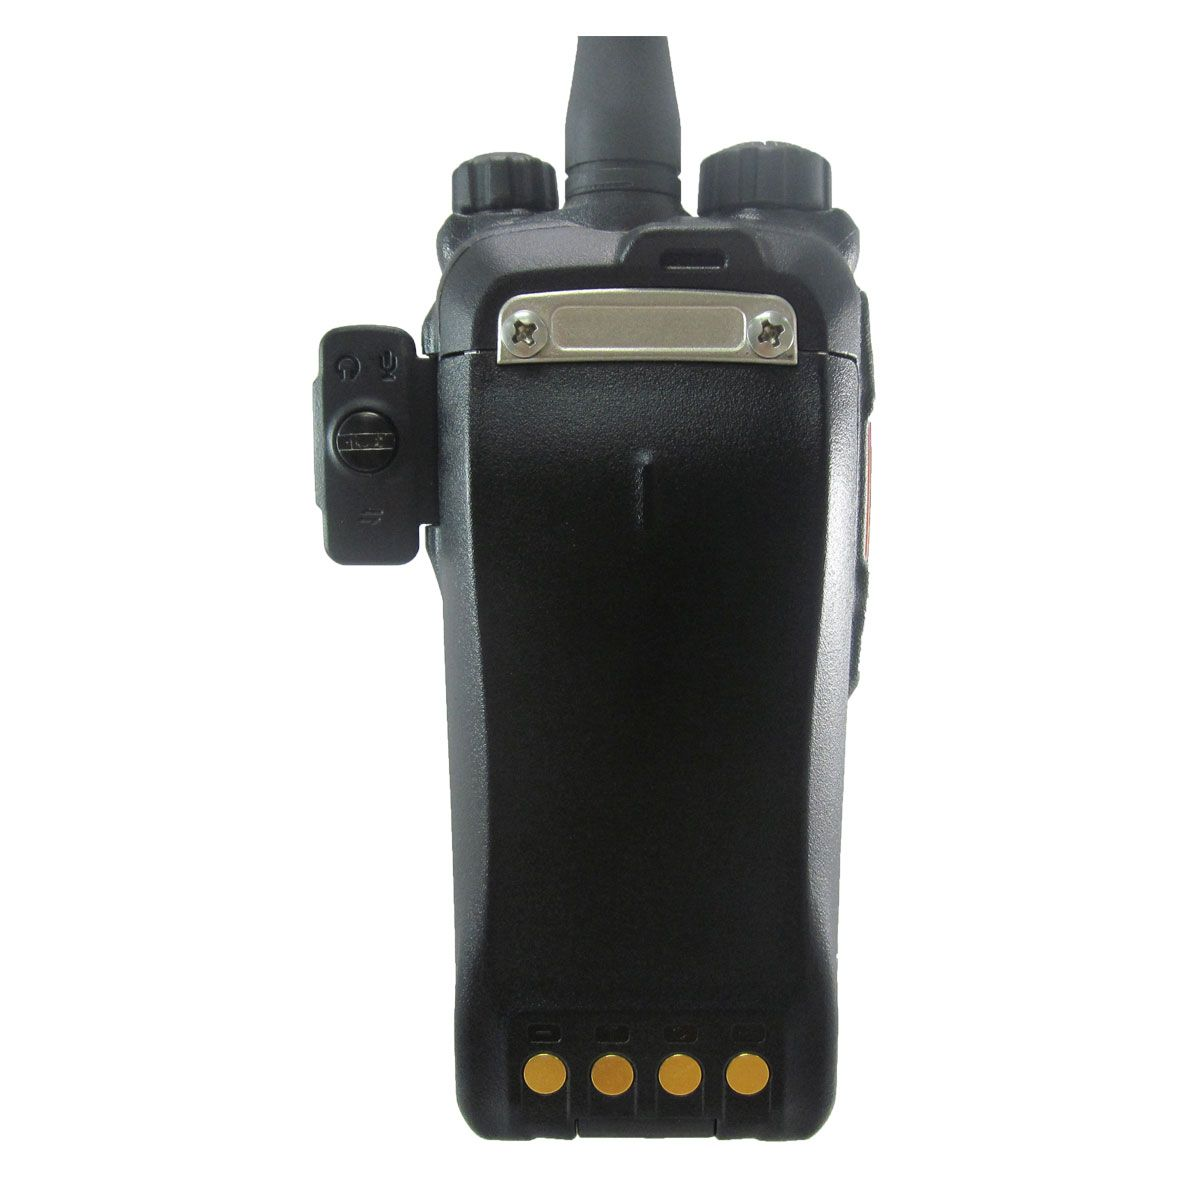 Radio Hytera PD706 Digital PD706-U2 UHF 450-520 MHz